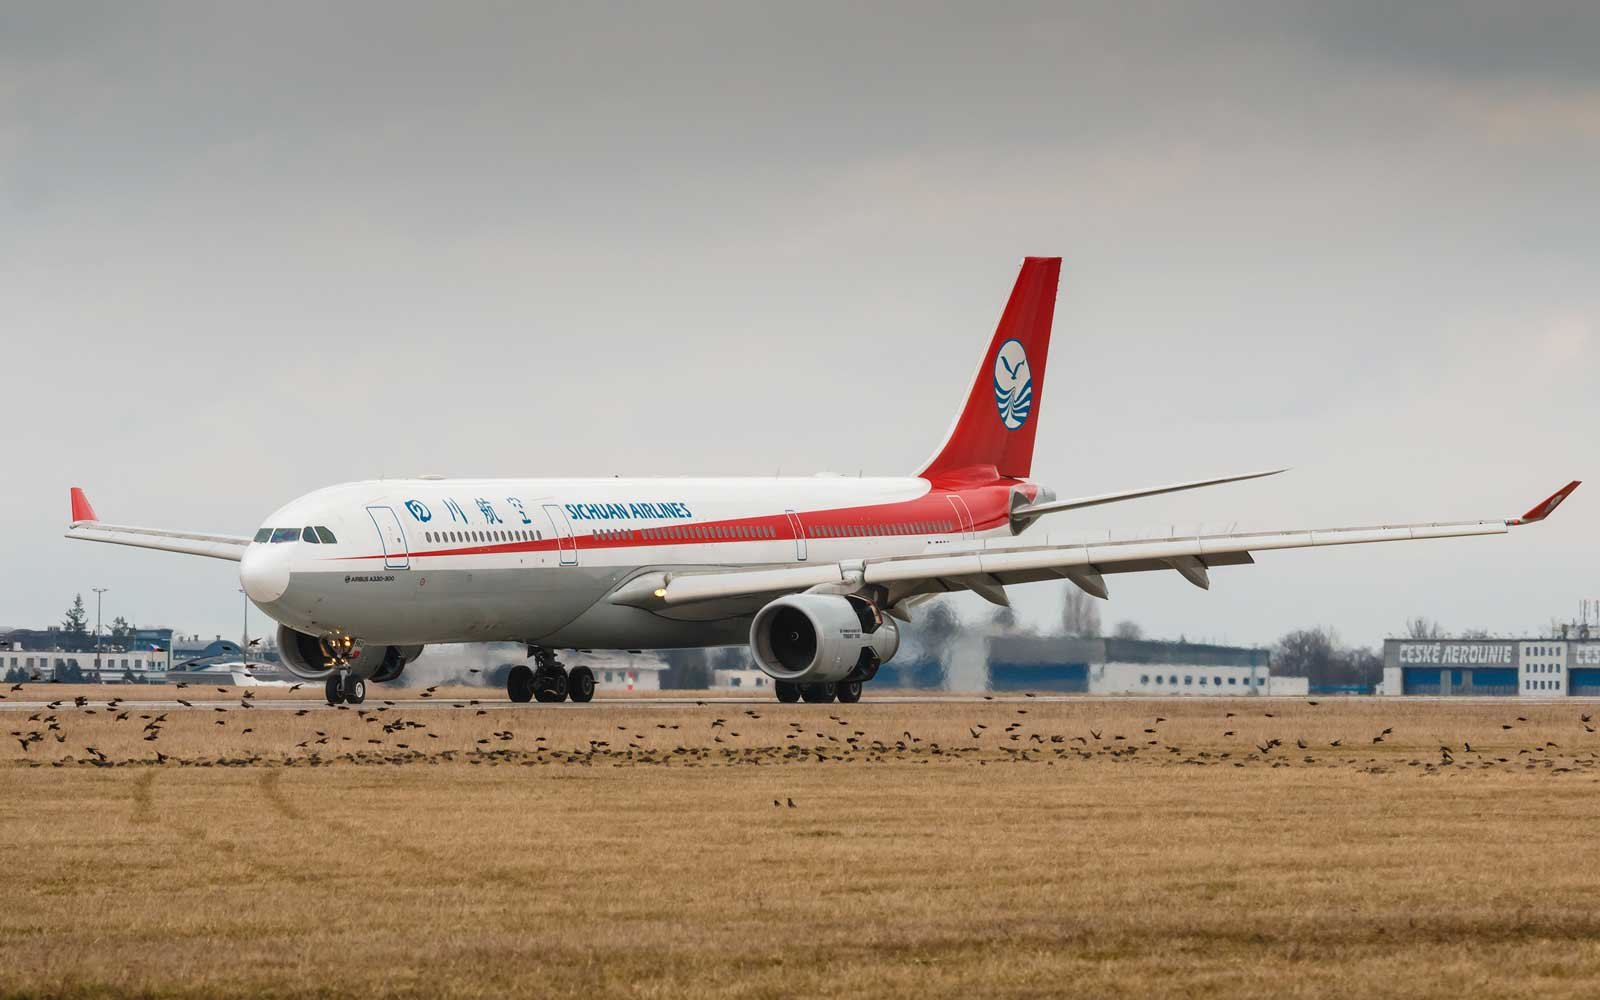 Sichuan Airlines plane on runway